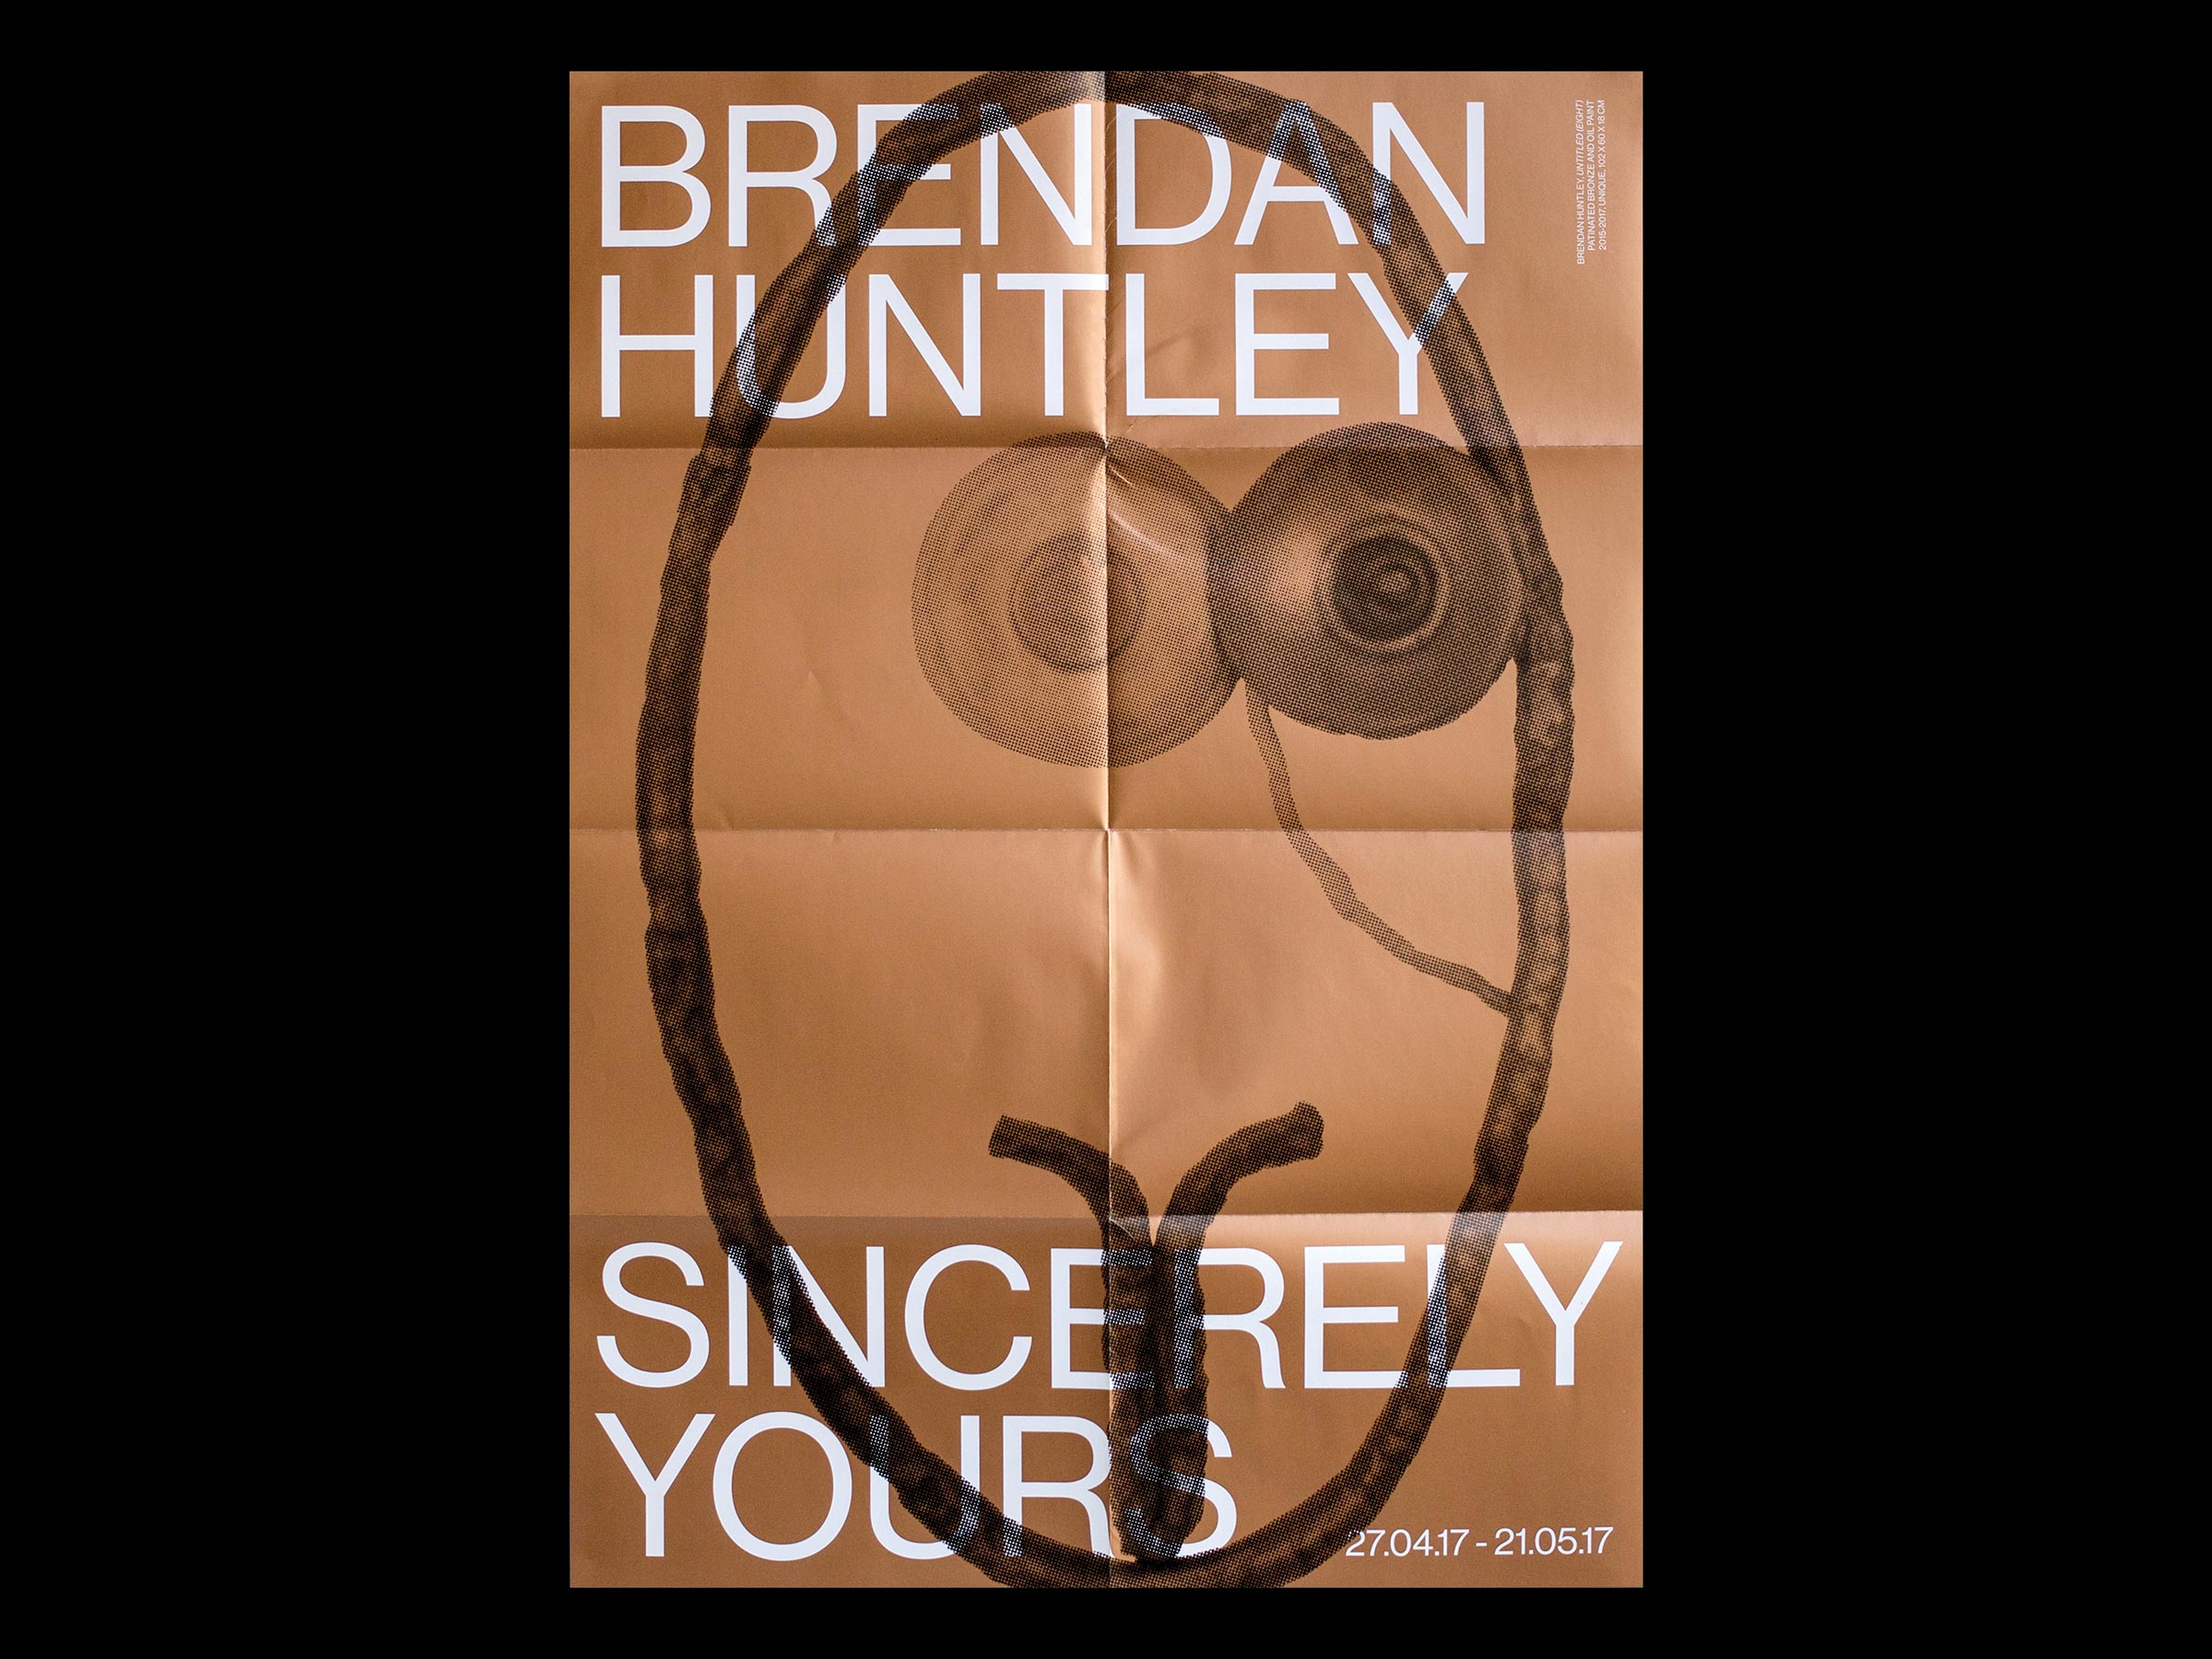 Brendan Huntley, Sincerely Yours